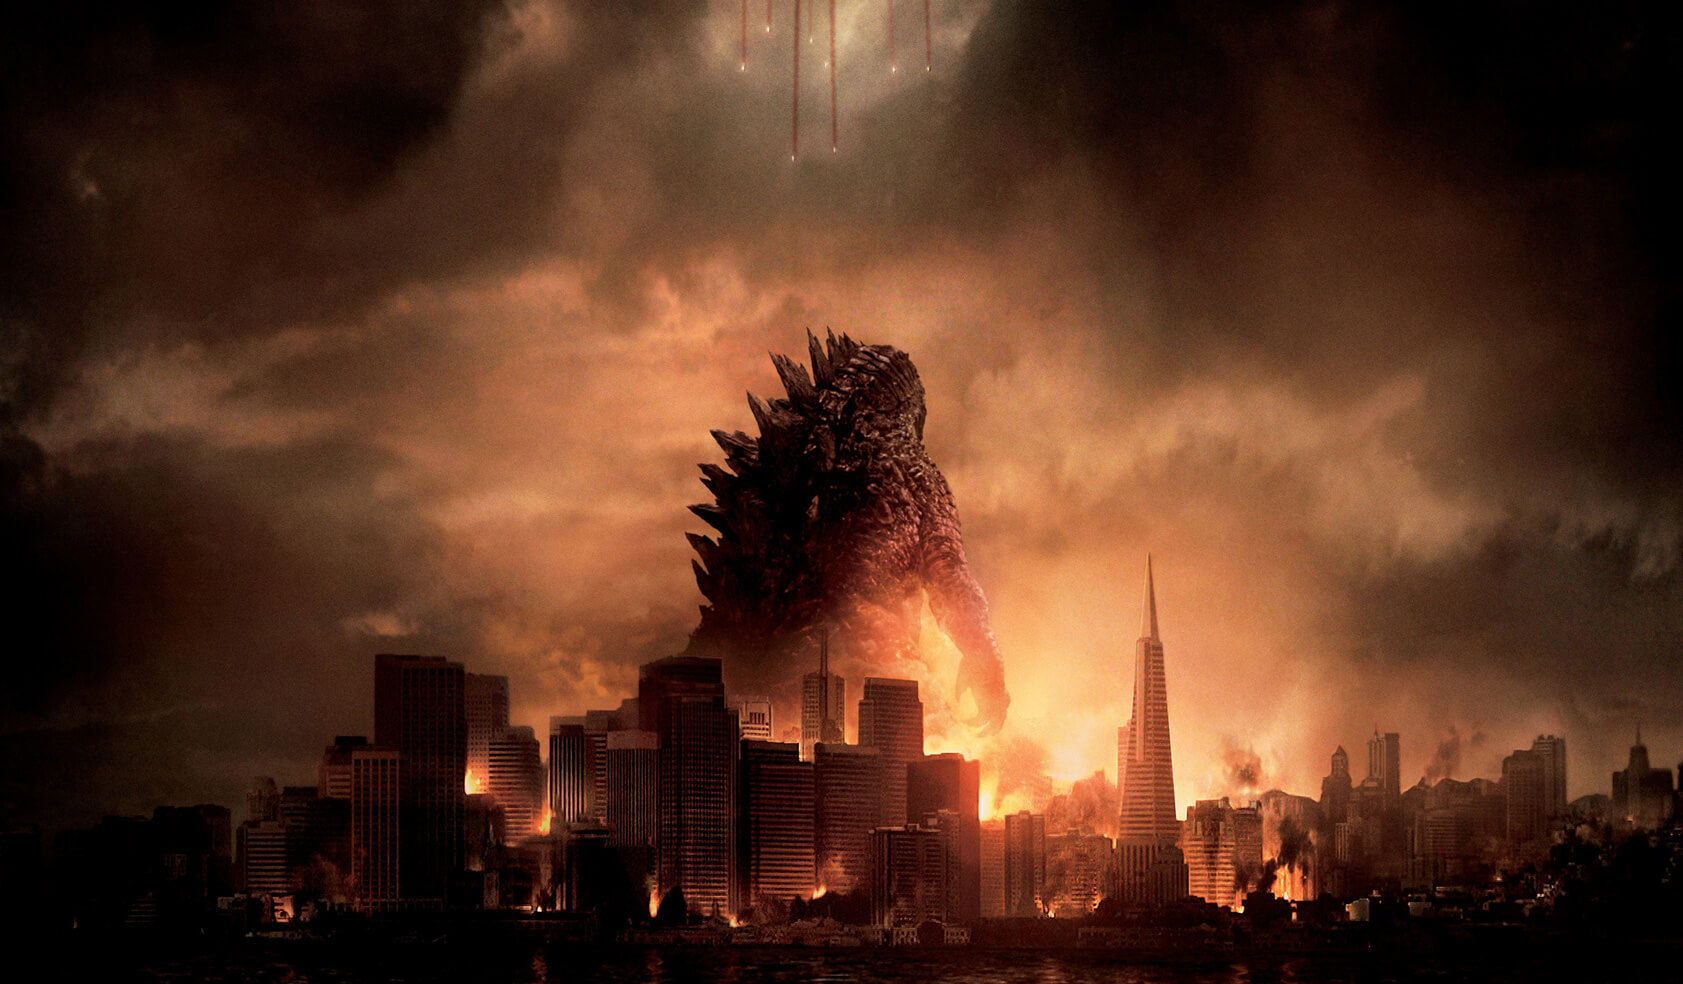 laser-time-godzilla-2014-movie-bryan-cranston